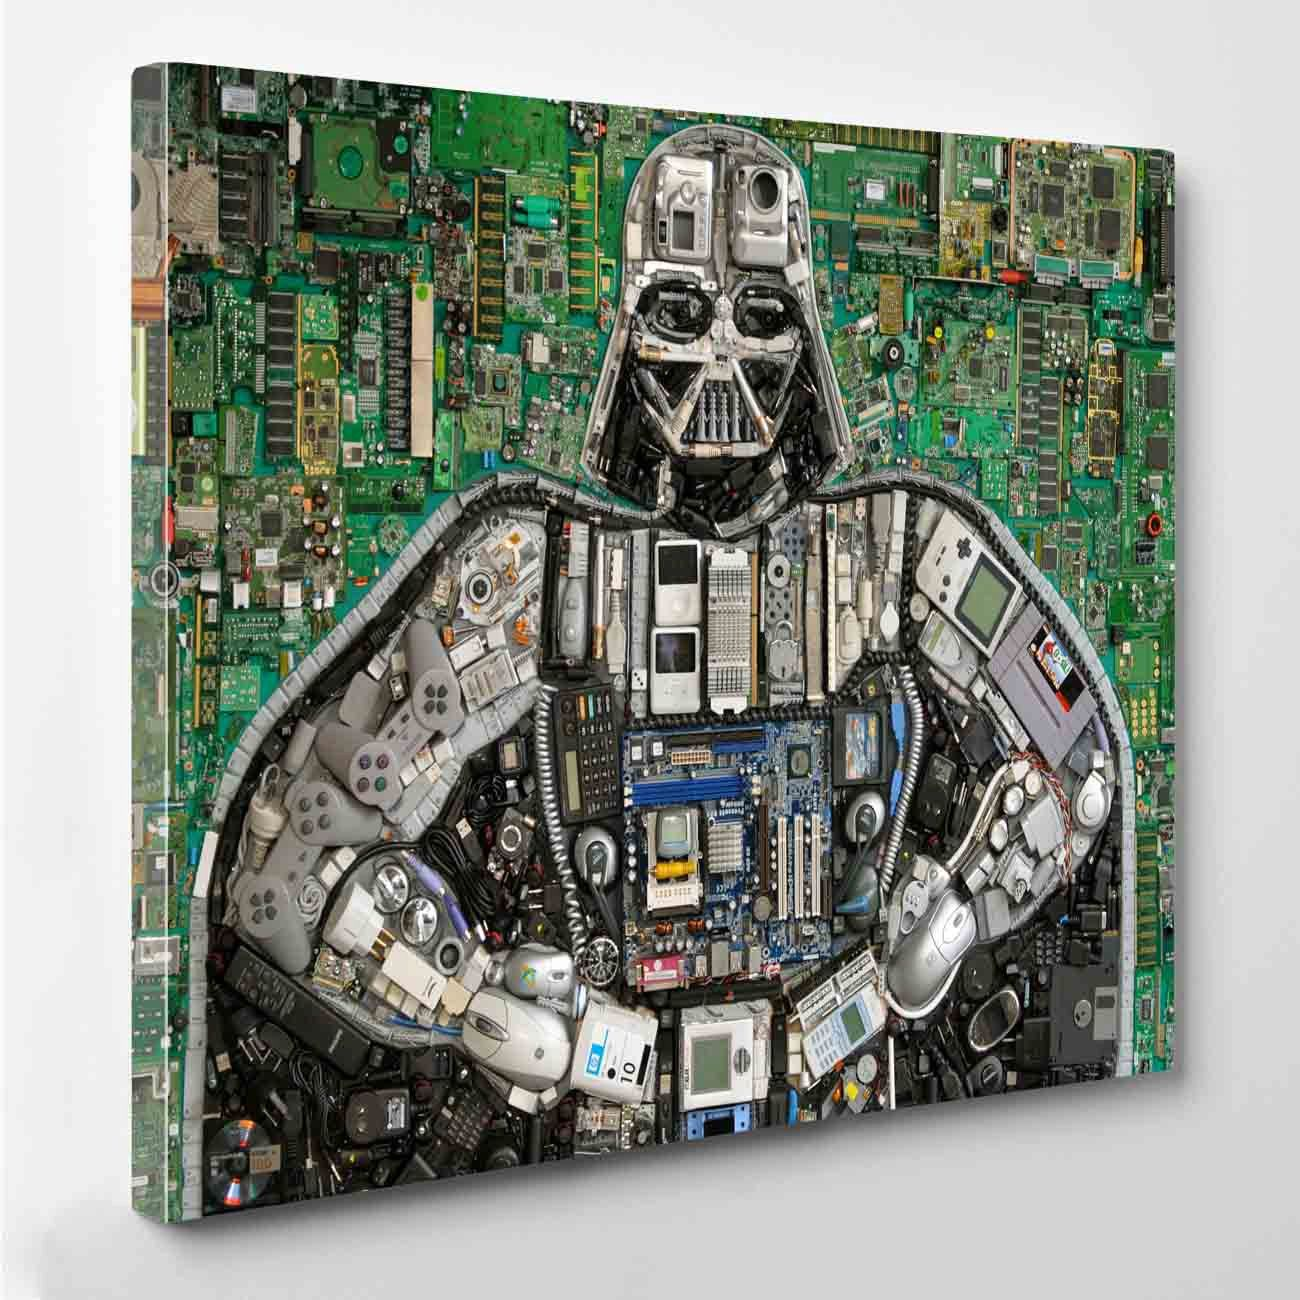 Darth Vader Mosaic Canvas Print By Perioddesign On Etsy Stuff To Pcb Sculptures Artist Upcycles Old Circuit Boards Into Art